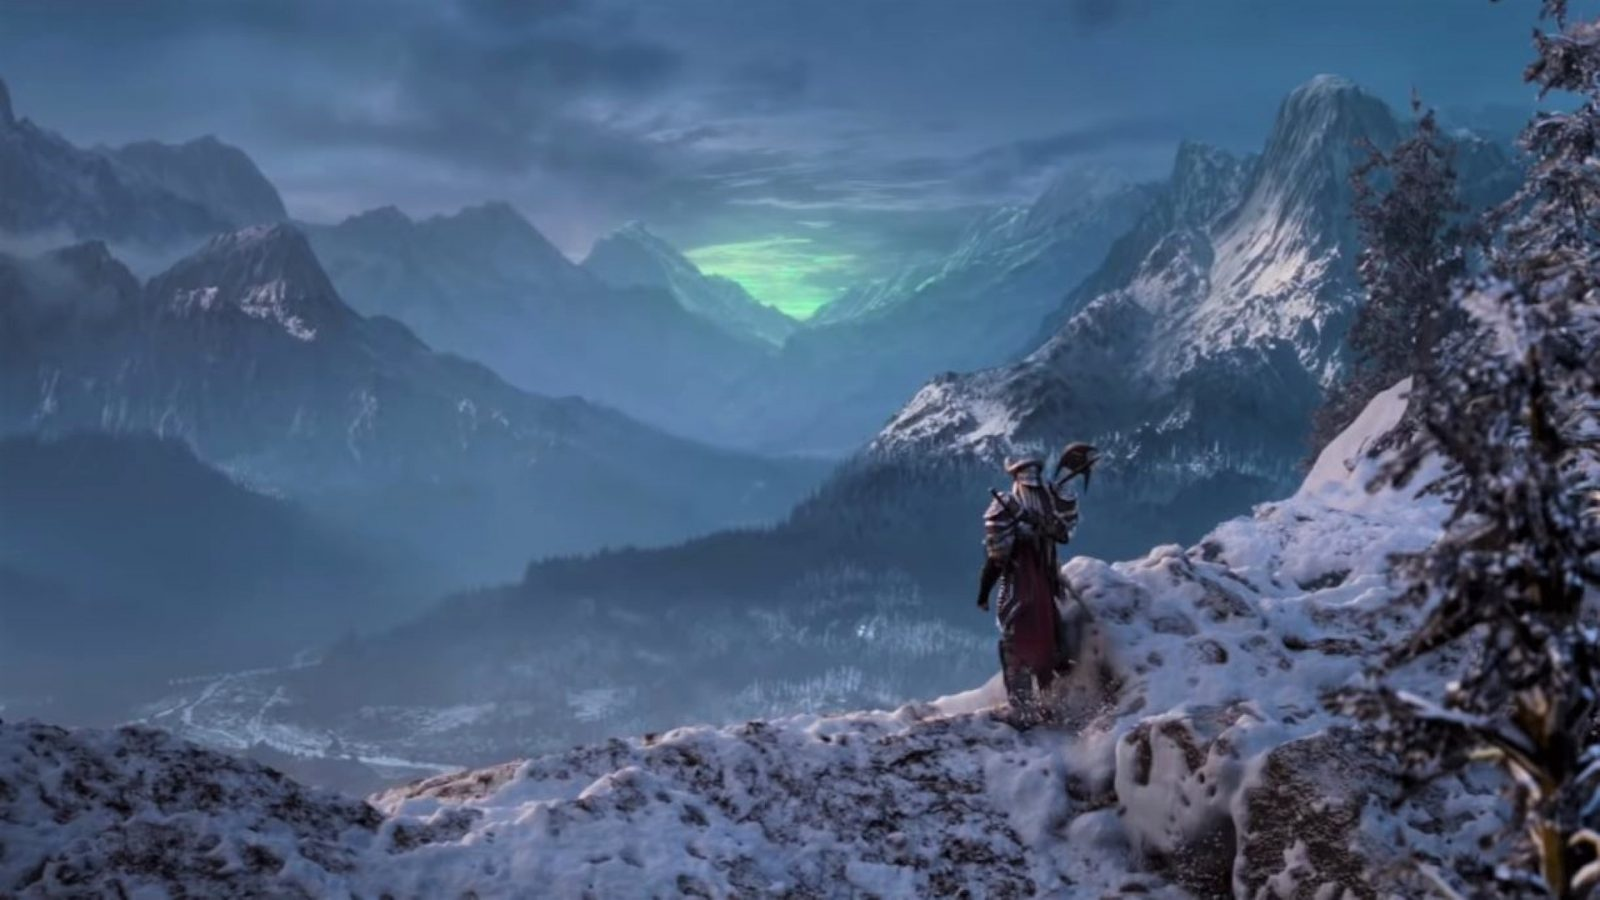 Explore Skyrim for the thousandth time in The Elder Scrolls Online soon